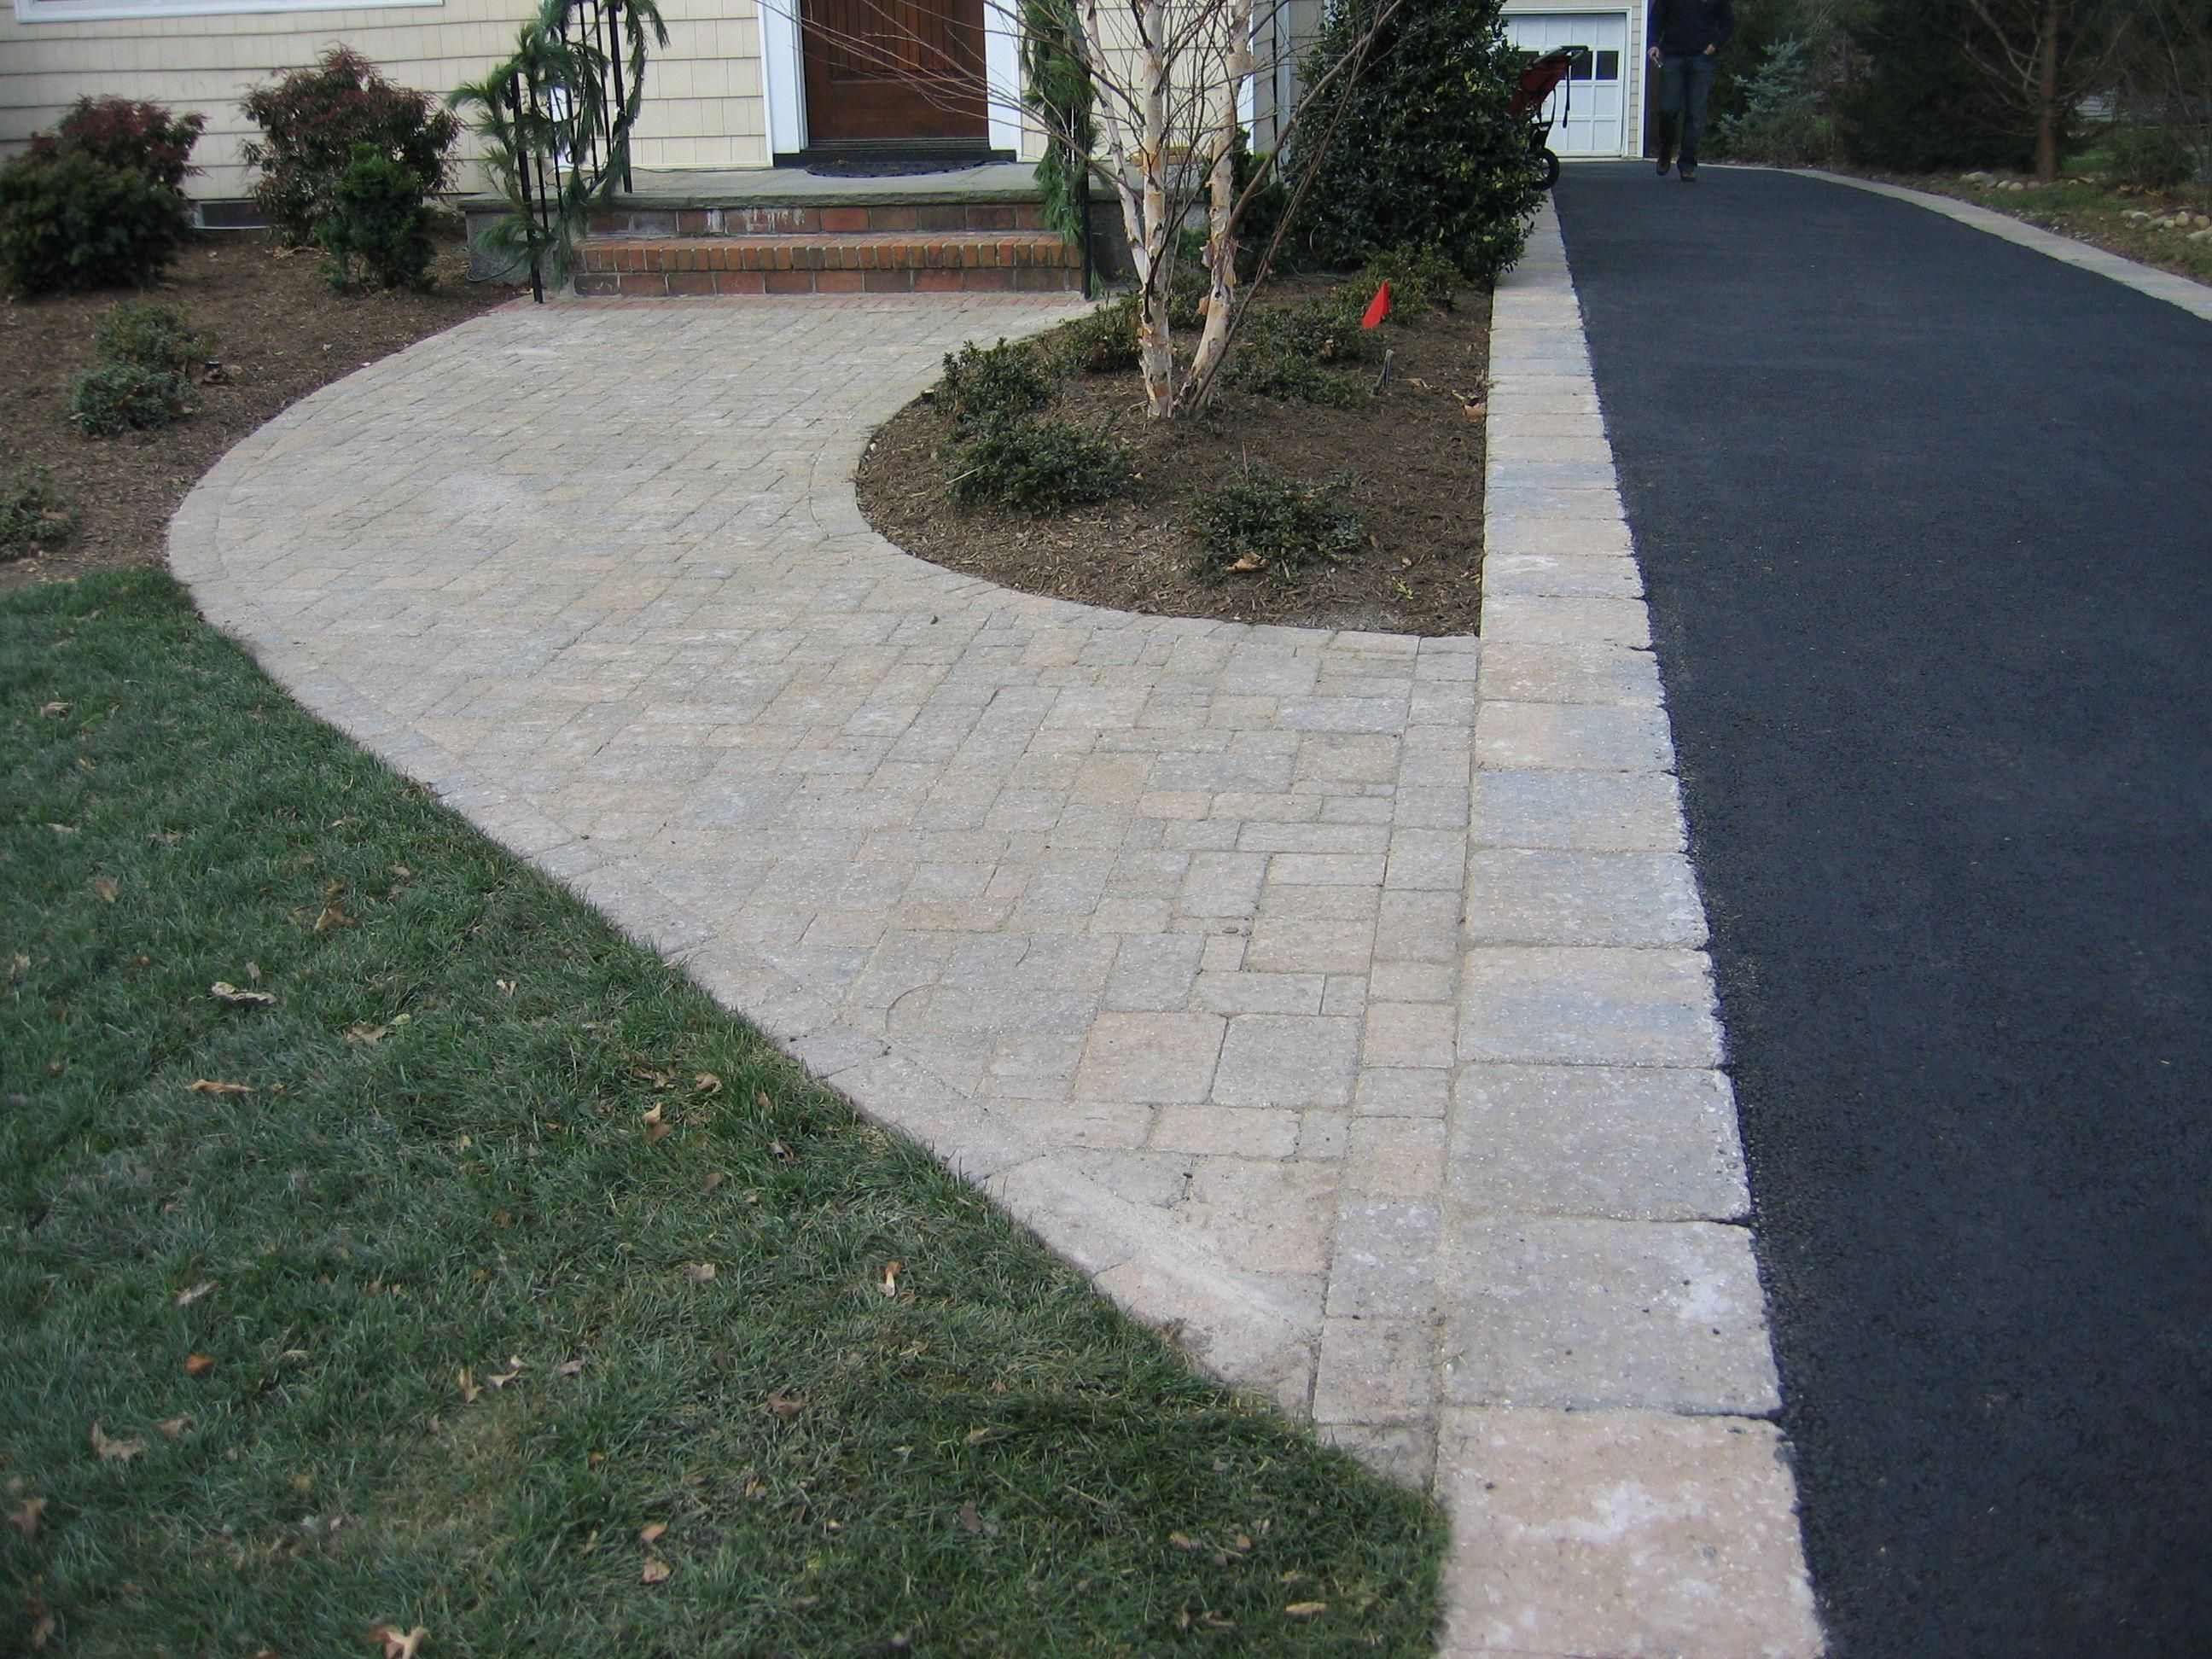 Asphalt Driveway With Paver Border And Walkway Driveway Edging Asphalt Driveway Driveway Landscaping